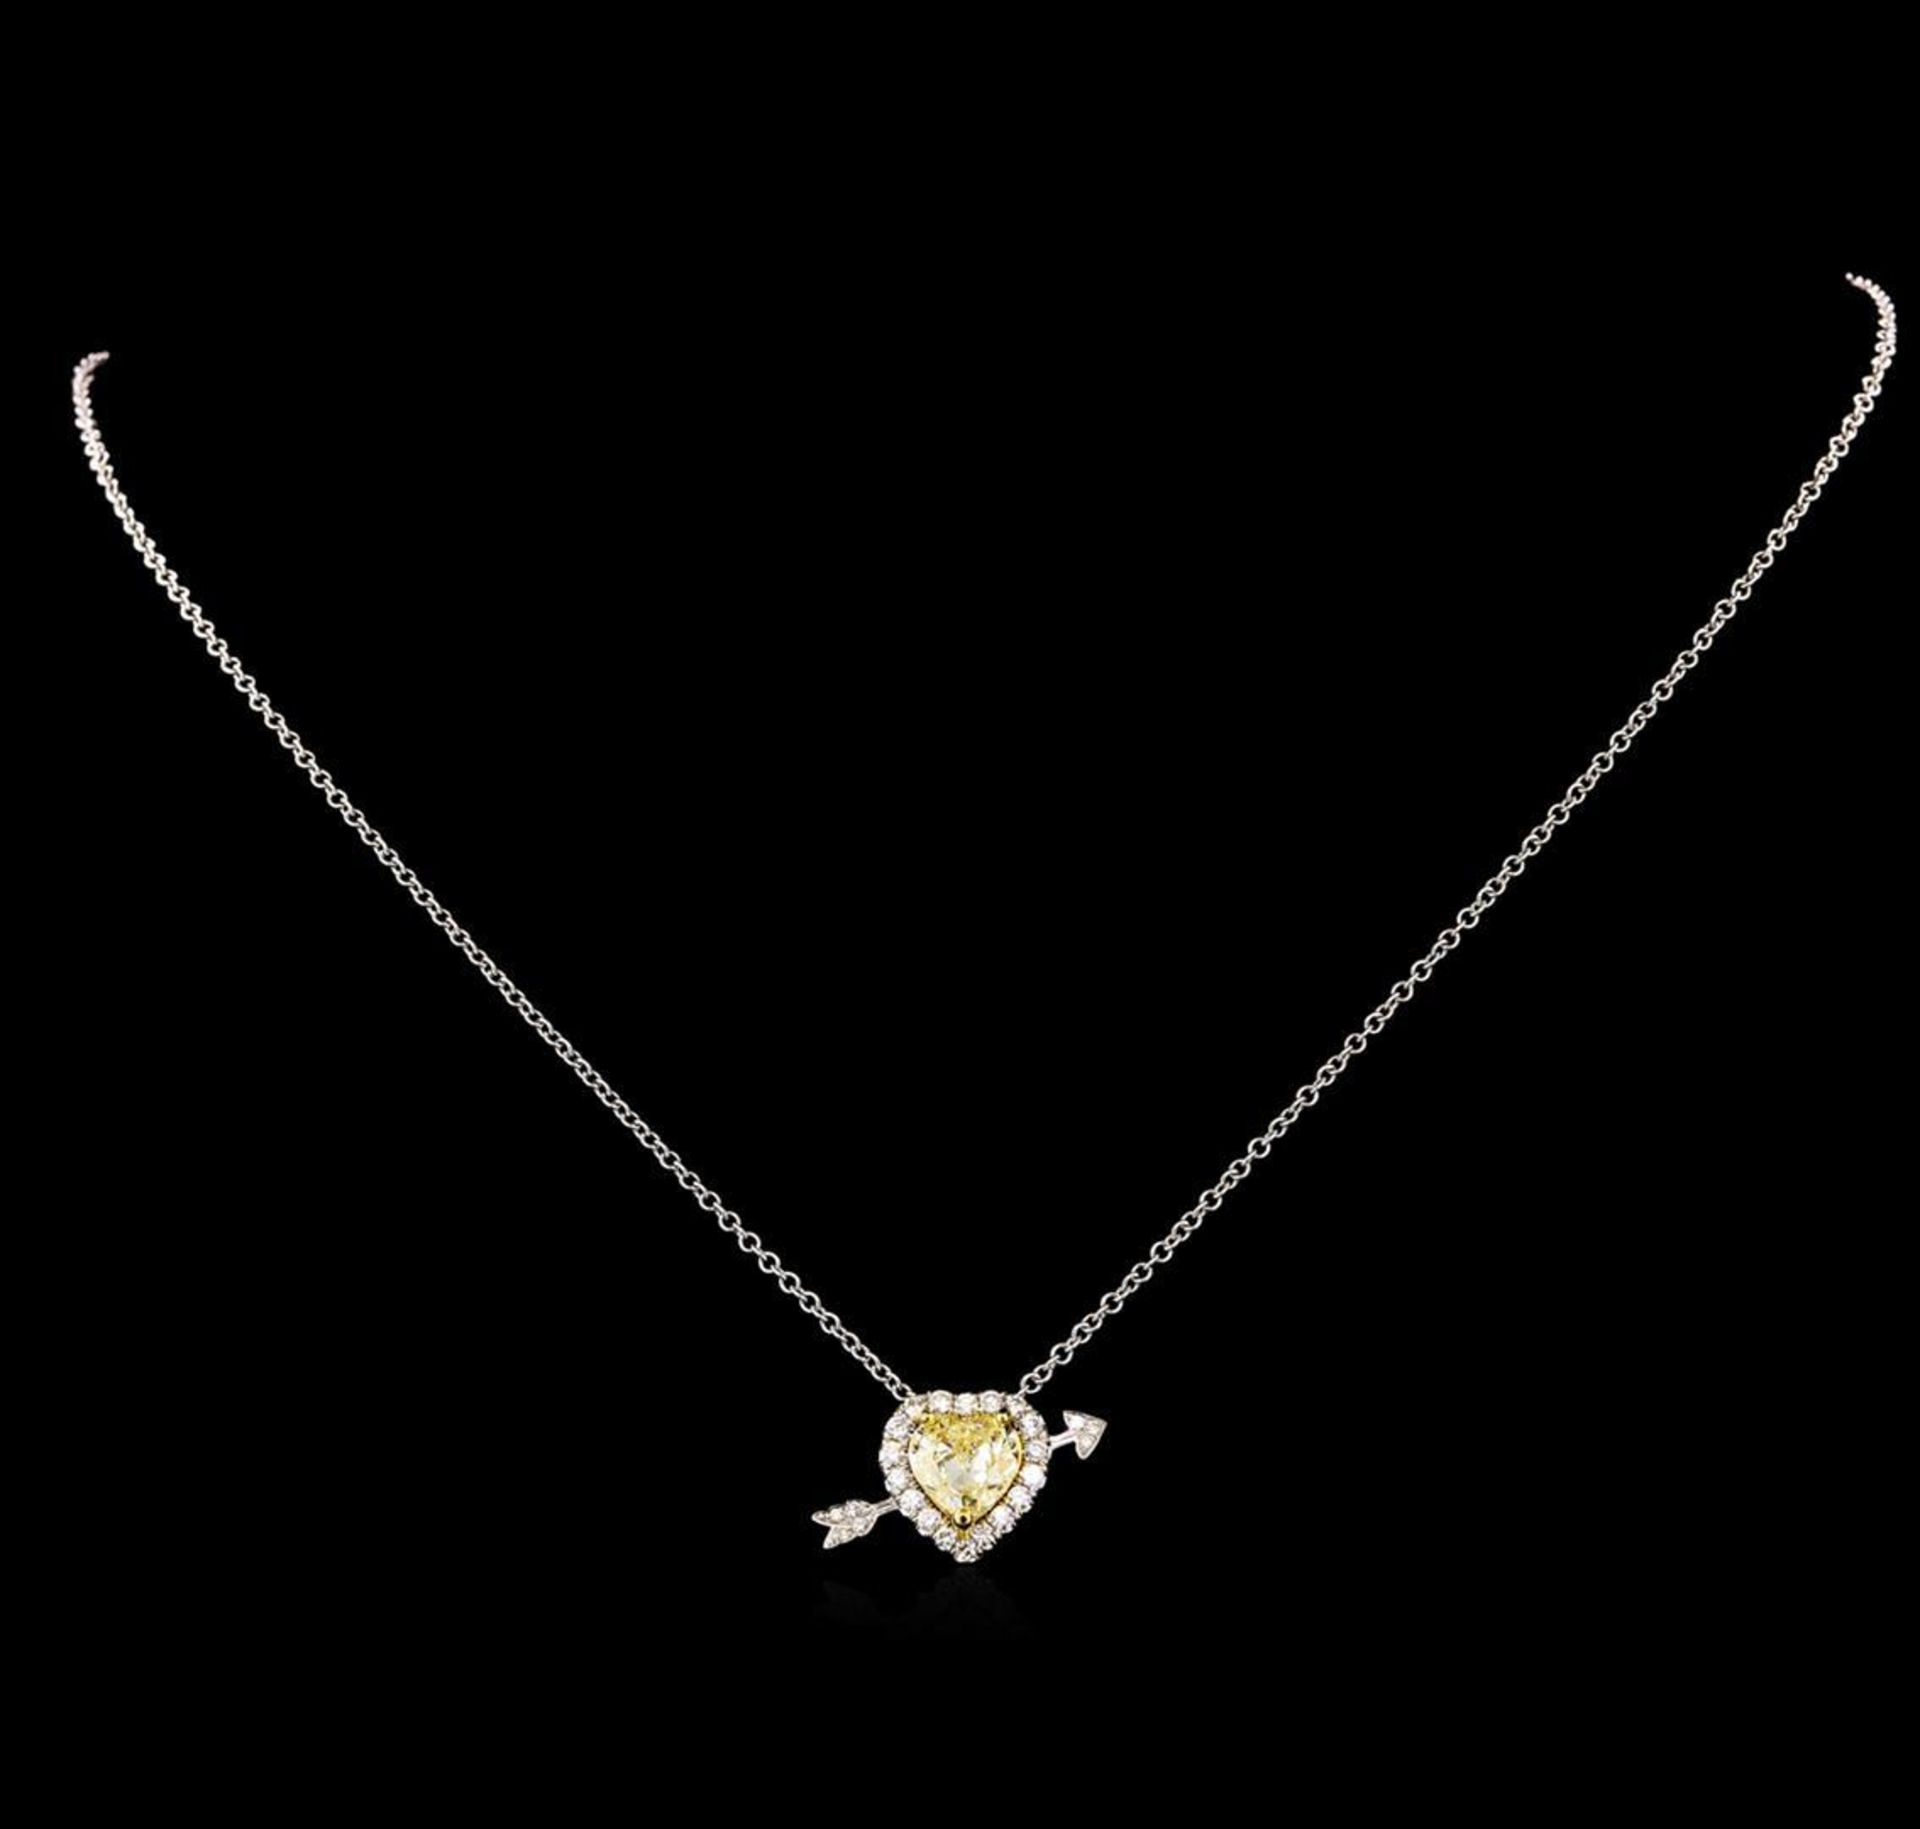 18KT Two-Tone Gold 2.25 ctw Diamond Pendant With Chain - Image 2 of 4